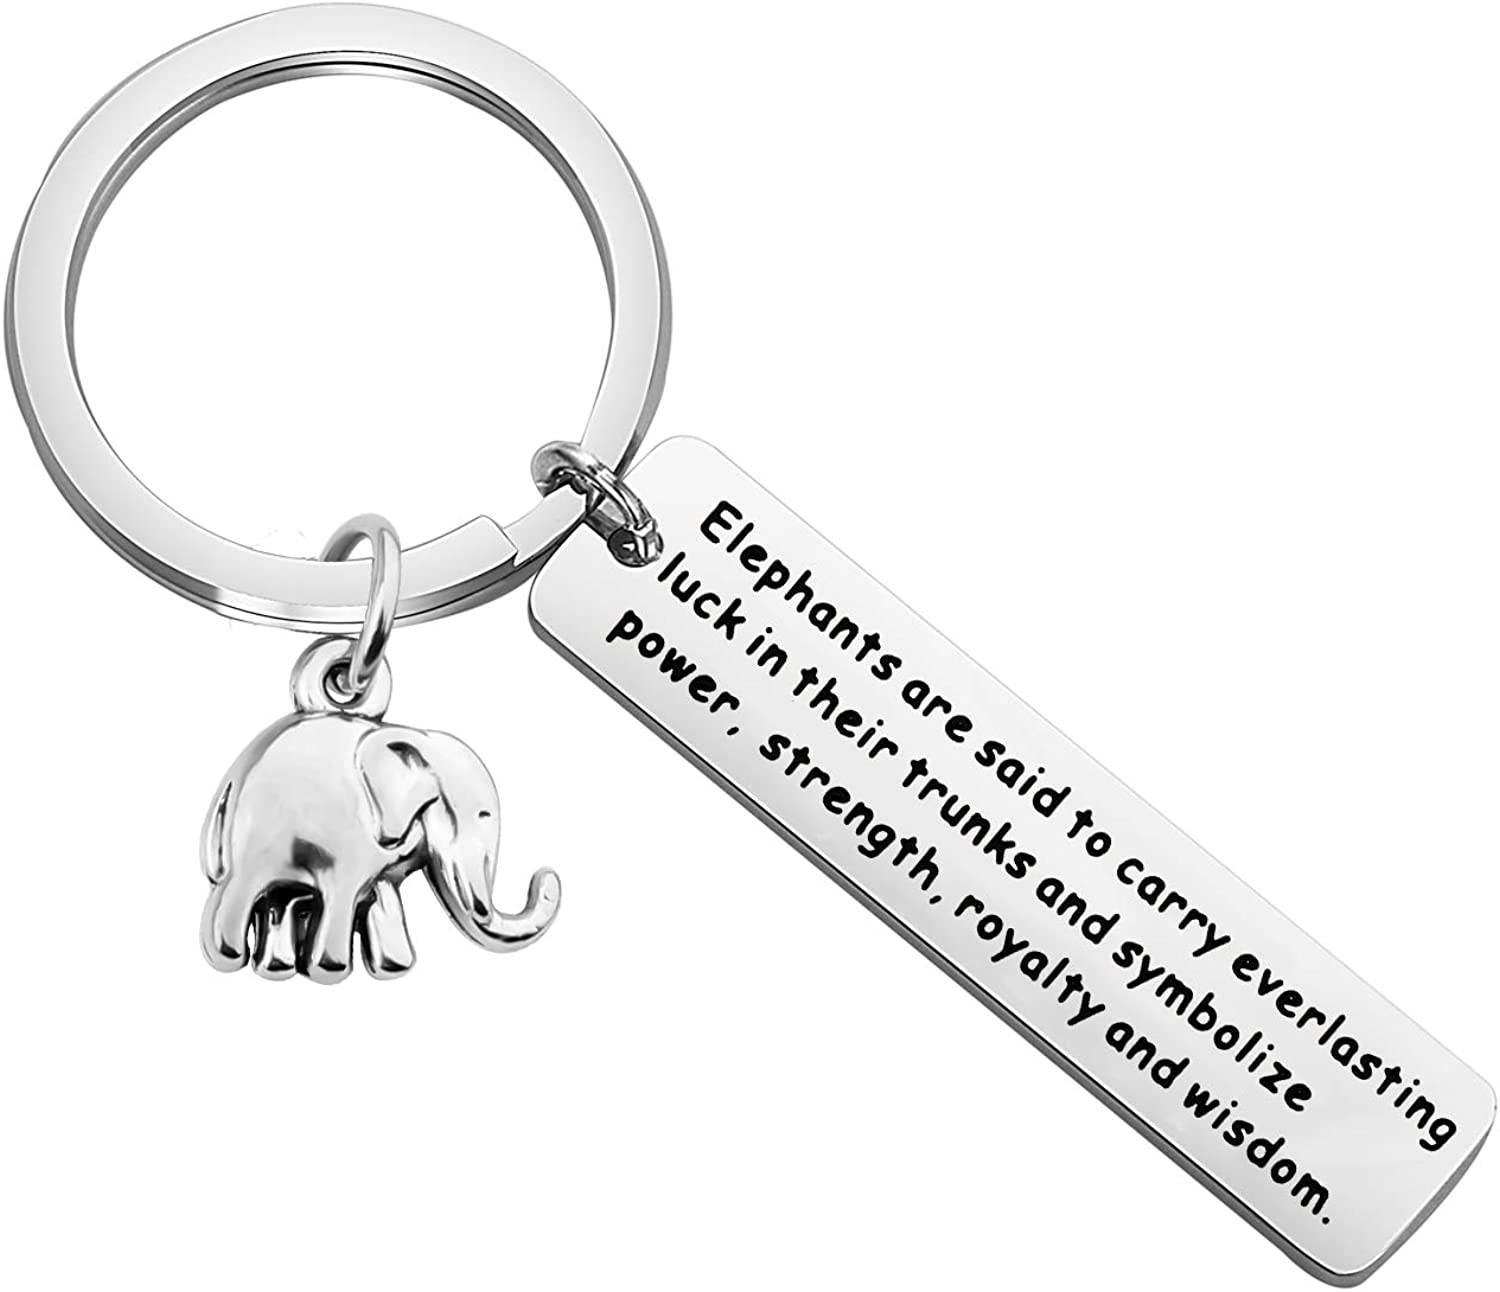 Details about  /LUCKY ELEPHANTS LOVE YOU LUCK PHRASE KEY CHAIN CLIP FOR PURSE BAG FOB BACKPACK